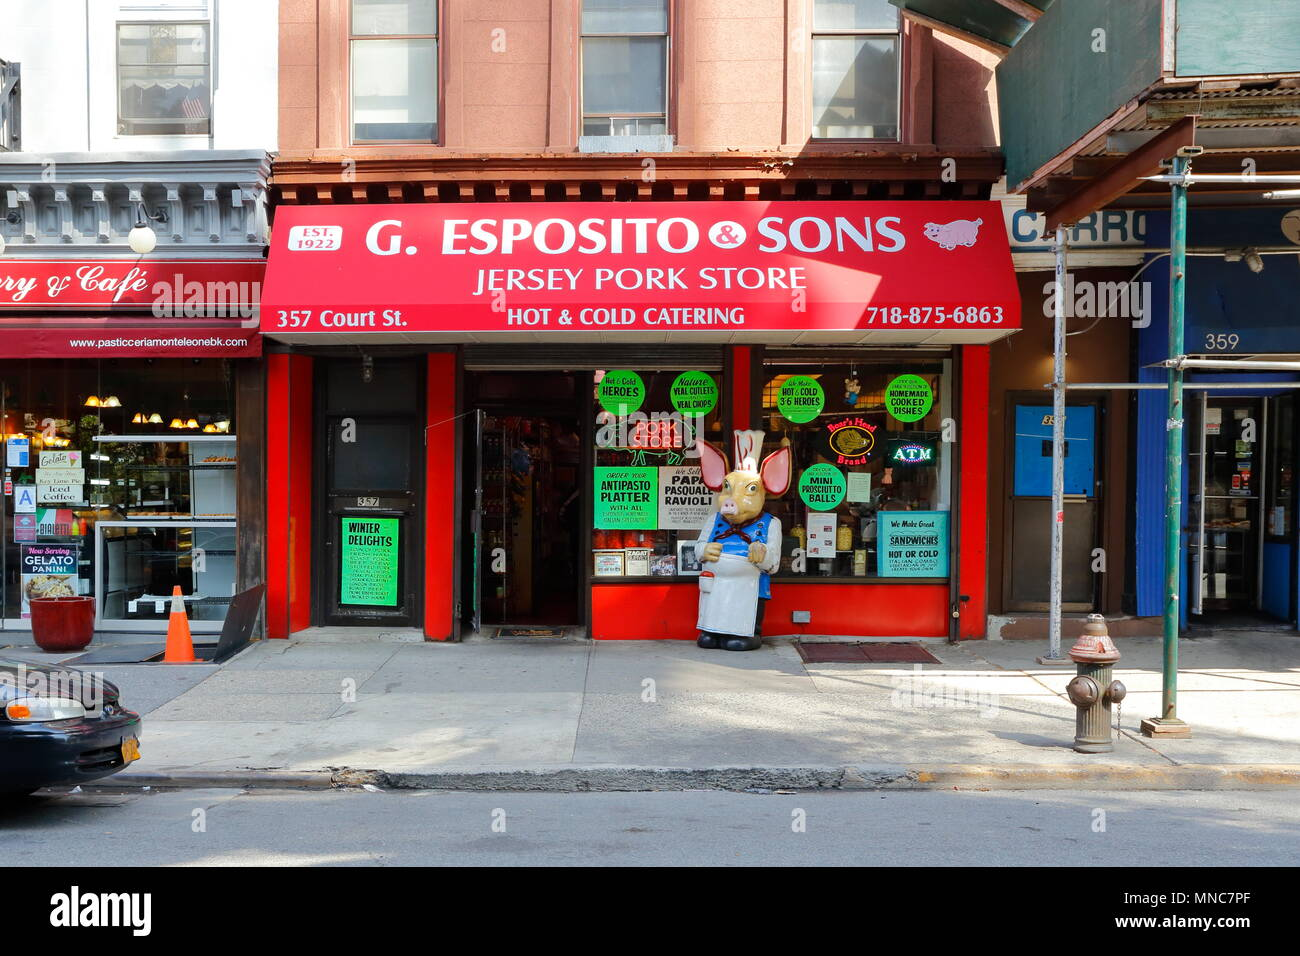 Esposito Sons Pork Store 357 Court St Brooklyn Ny Exterior Storefront Of A Butcher Shop In Cobble Hill Stock Photo Alamy